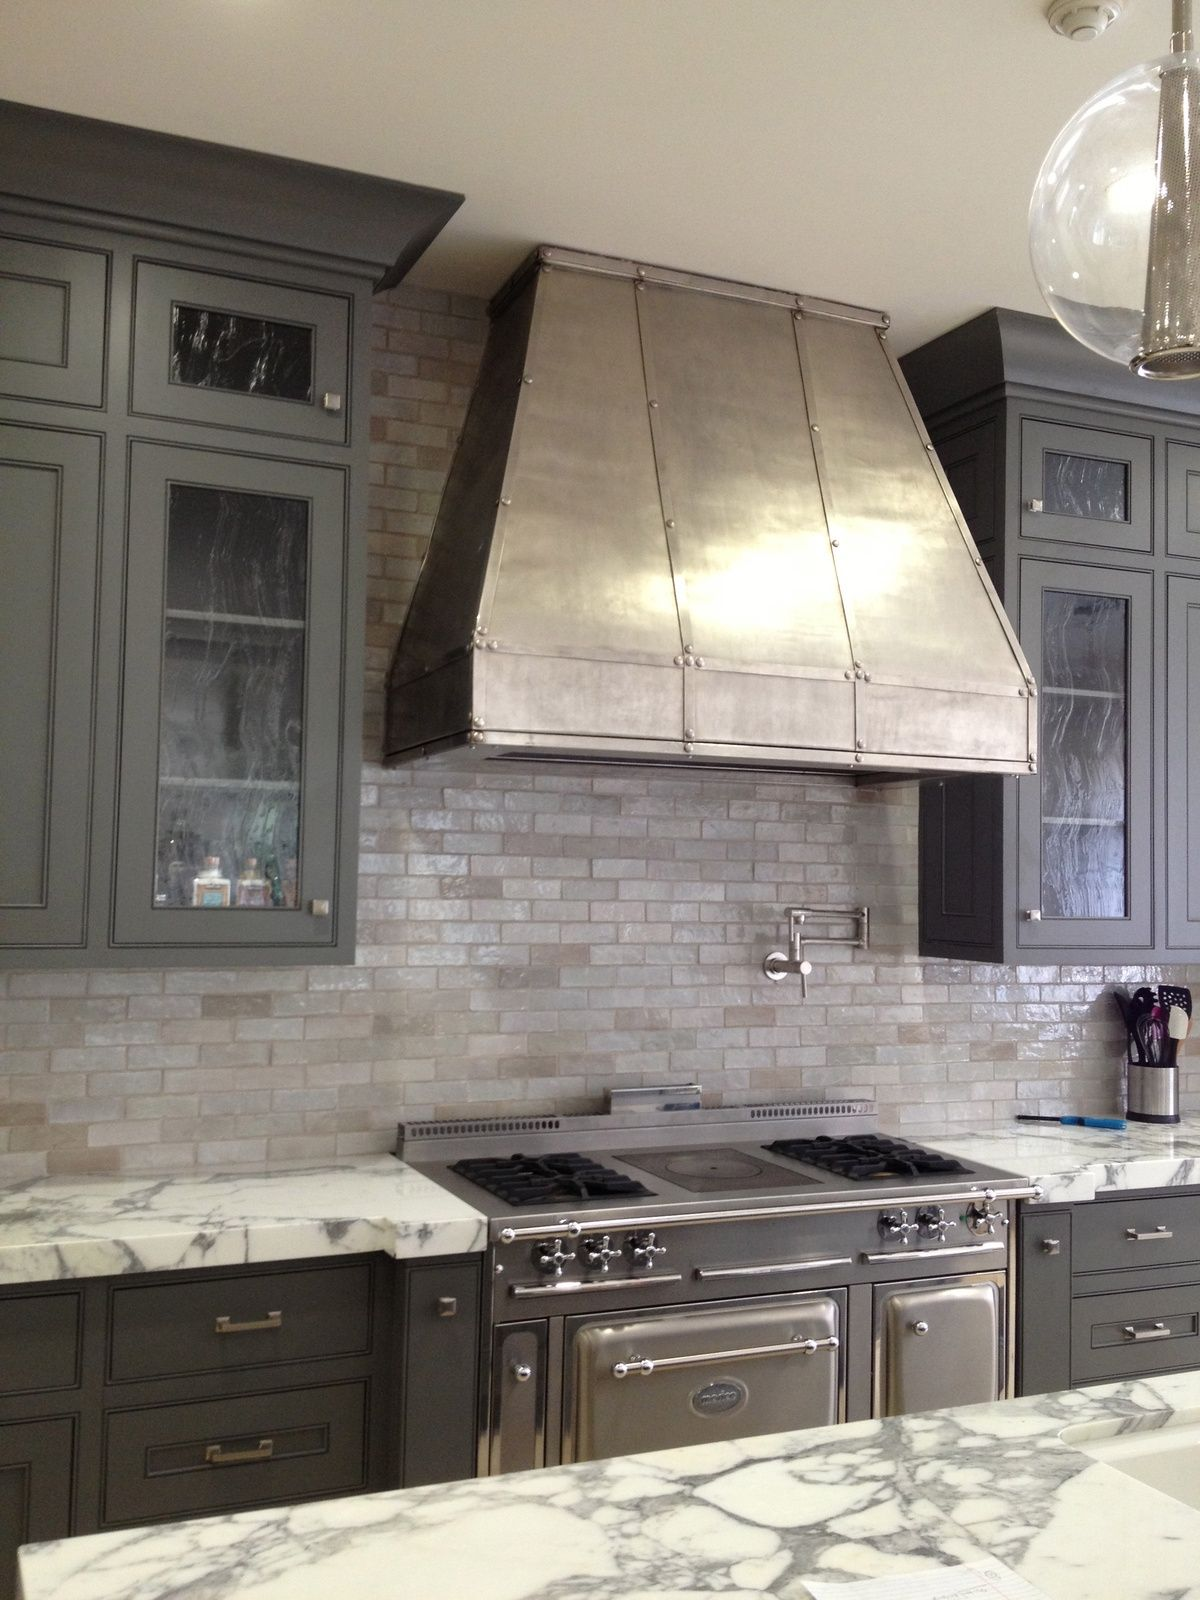 Loving the gray neutrals on the backsplash with the white and gray